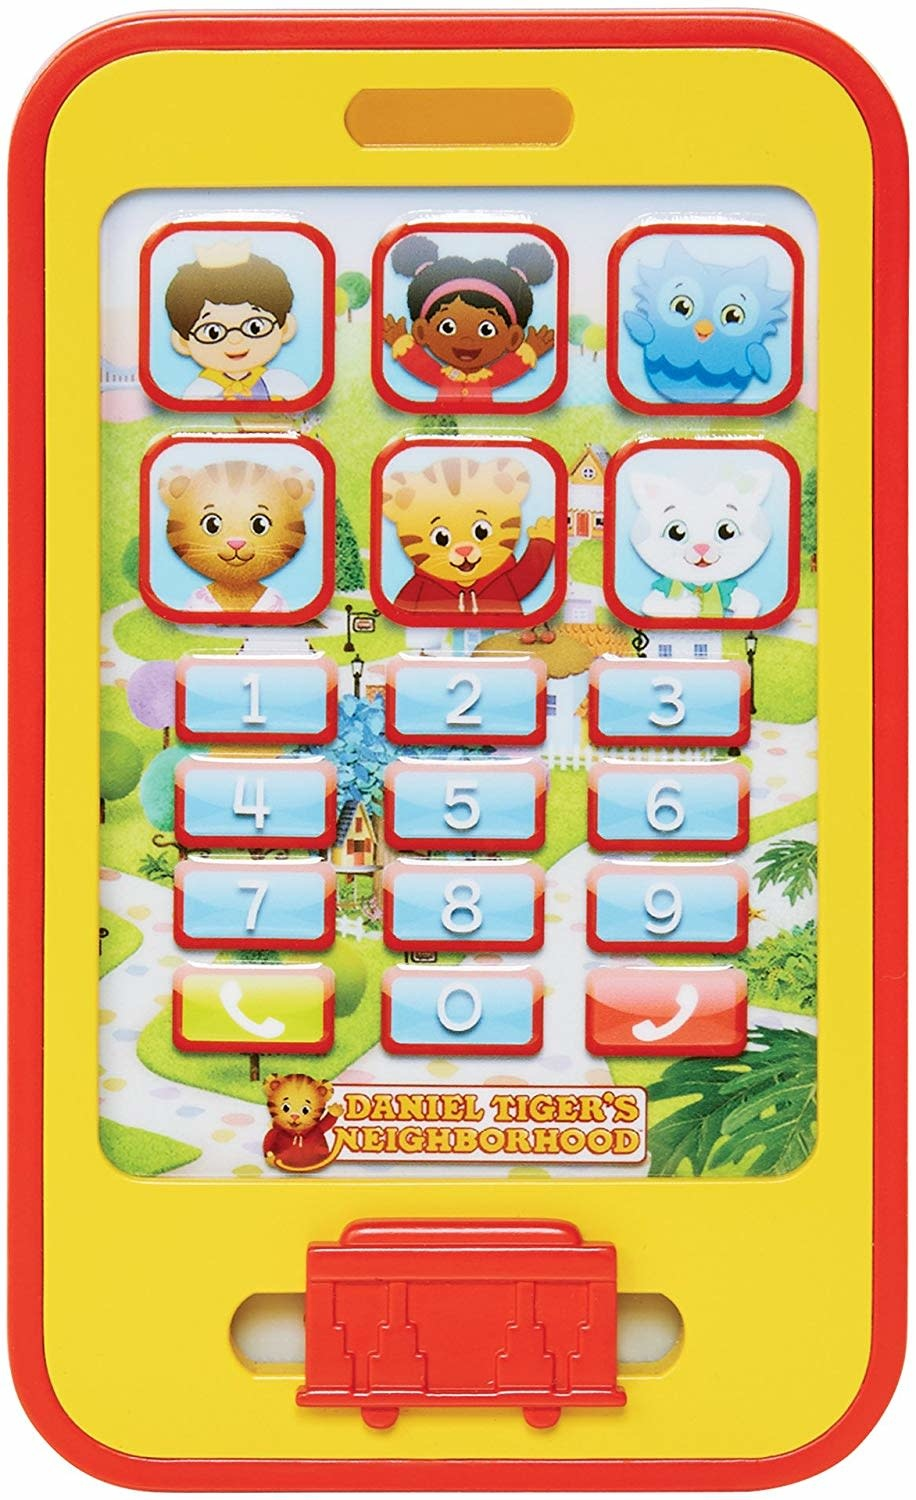 Daniel Tiger's Neighborhood Cell Phone Toy